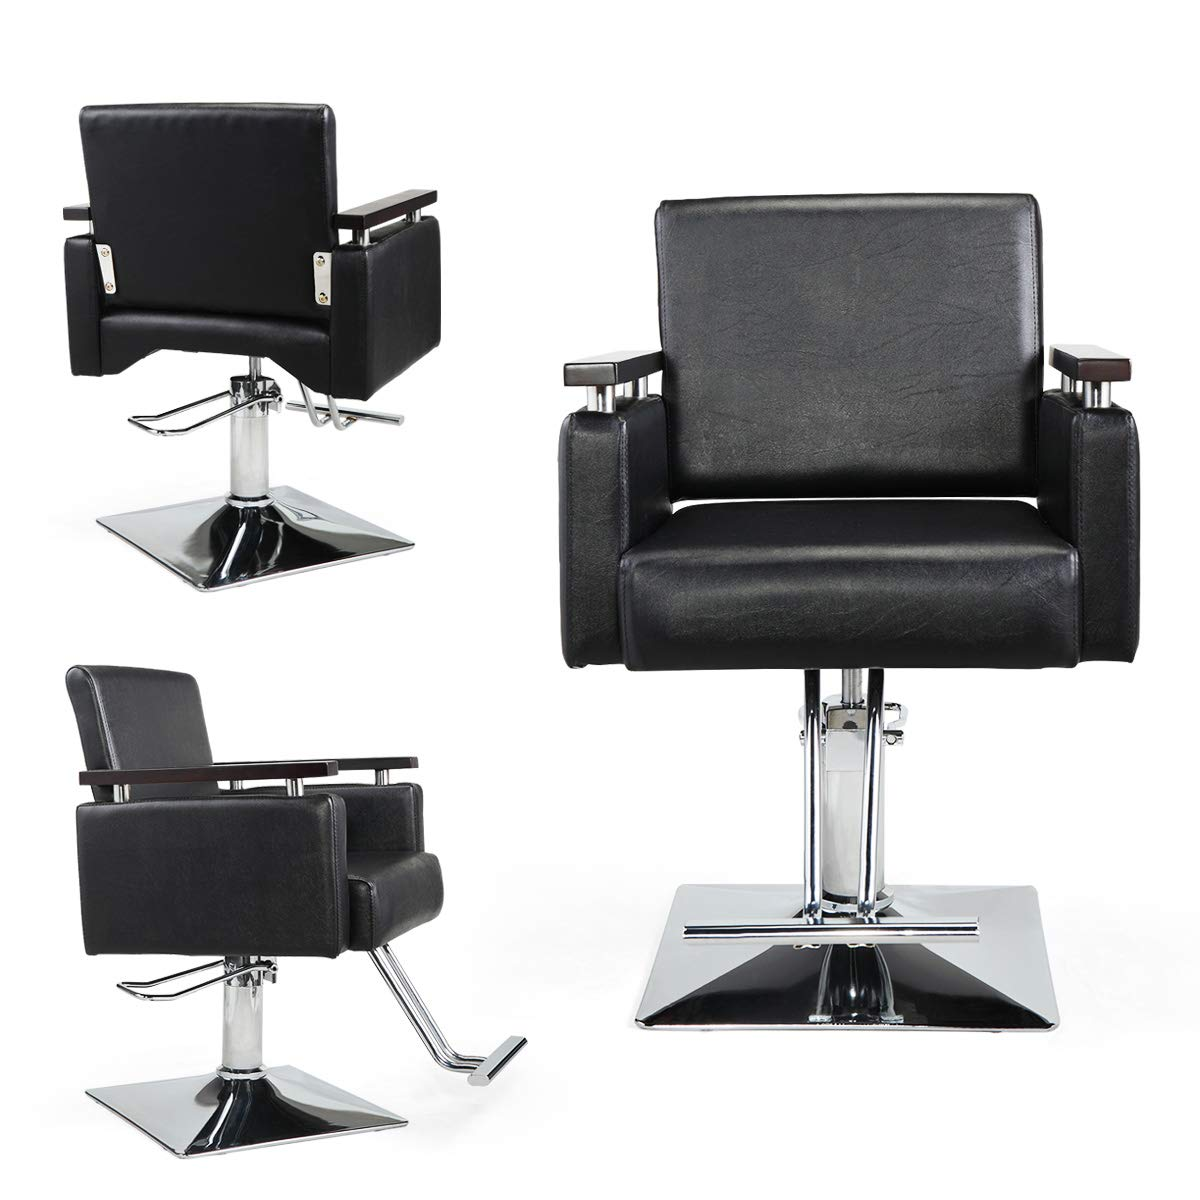 JAXPETY Hydraulic Barber Chair Wide Styling Salon Chair All Purpose Beauty Equipment by JAXPETY